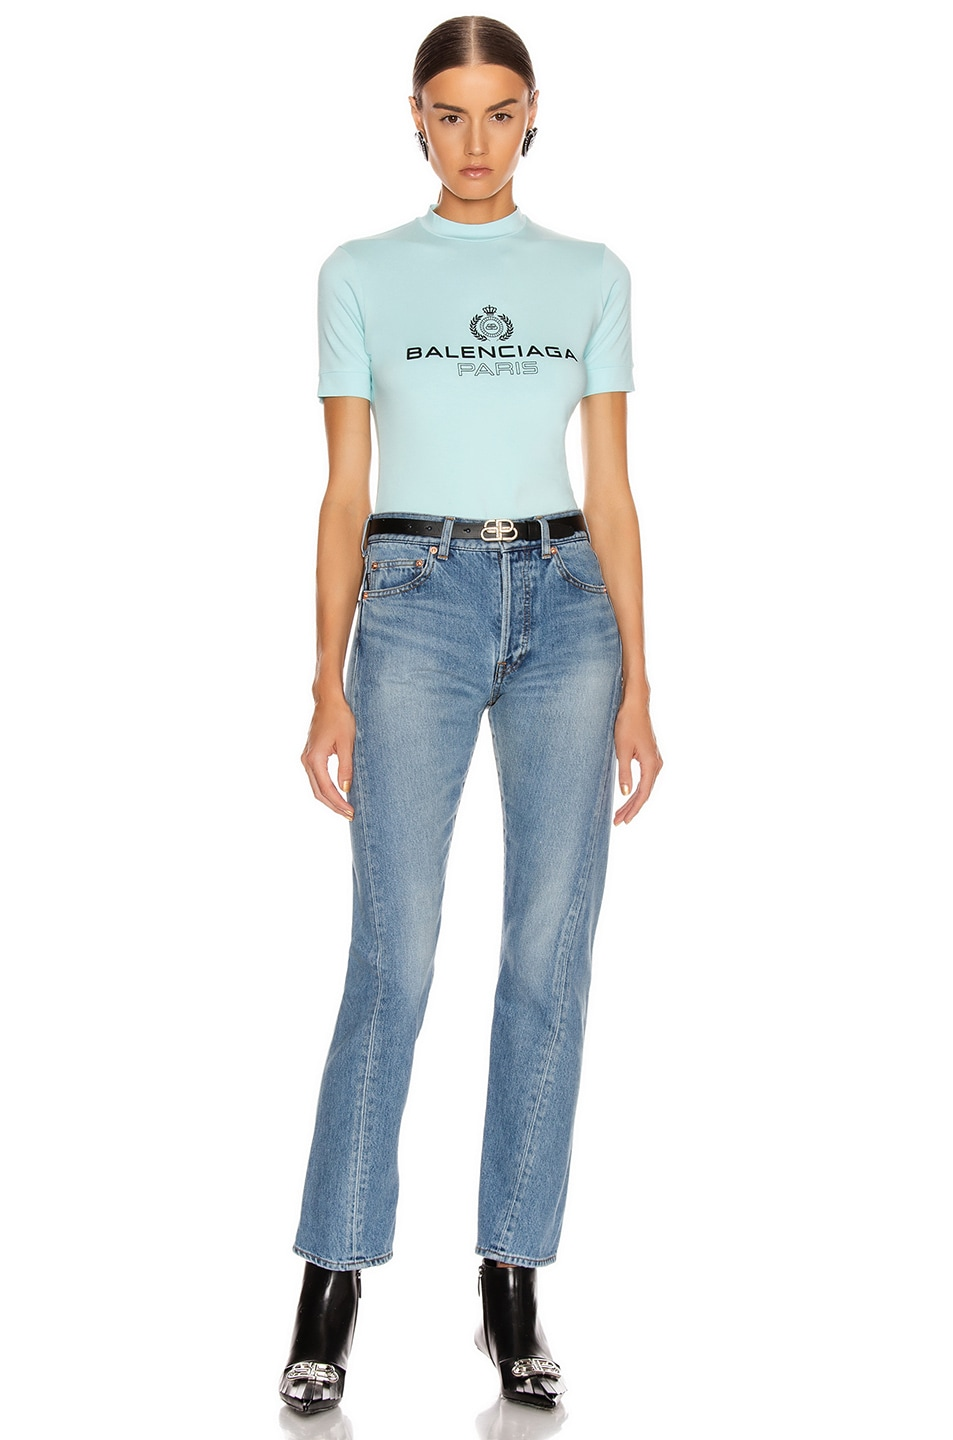 Image 4 of Balenciaga Paris Laurel Fitted T Shirt in Candy Blue